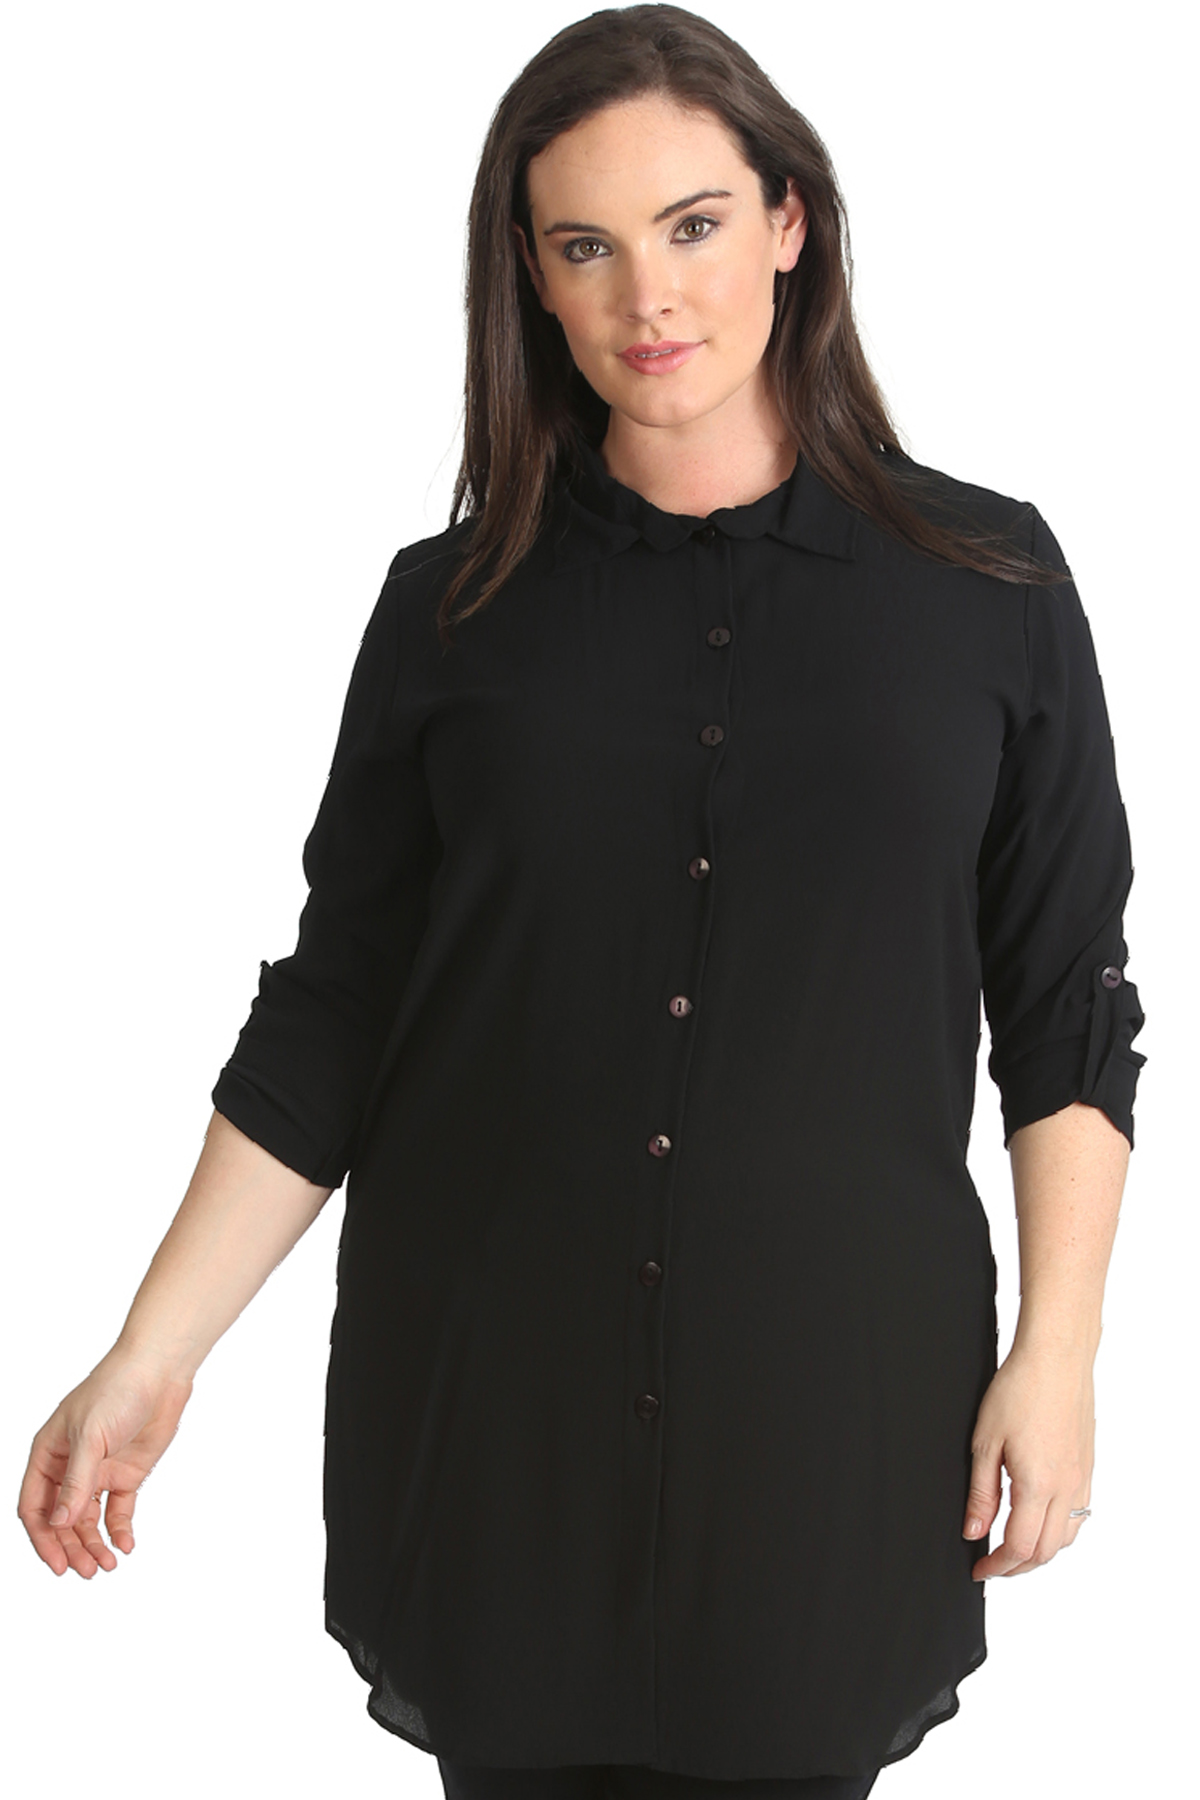 New-Womens-Shirt-Plus-Size-Ladies-Side-Slit-Plain-Top-Collar-Blouse-Long-Button